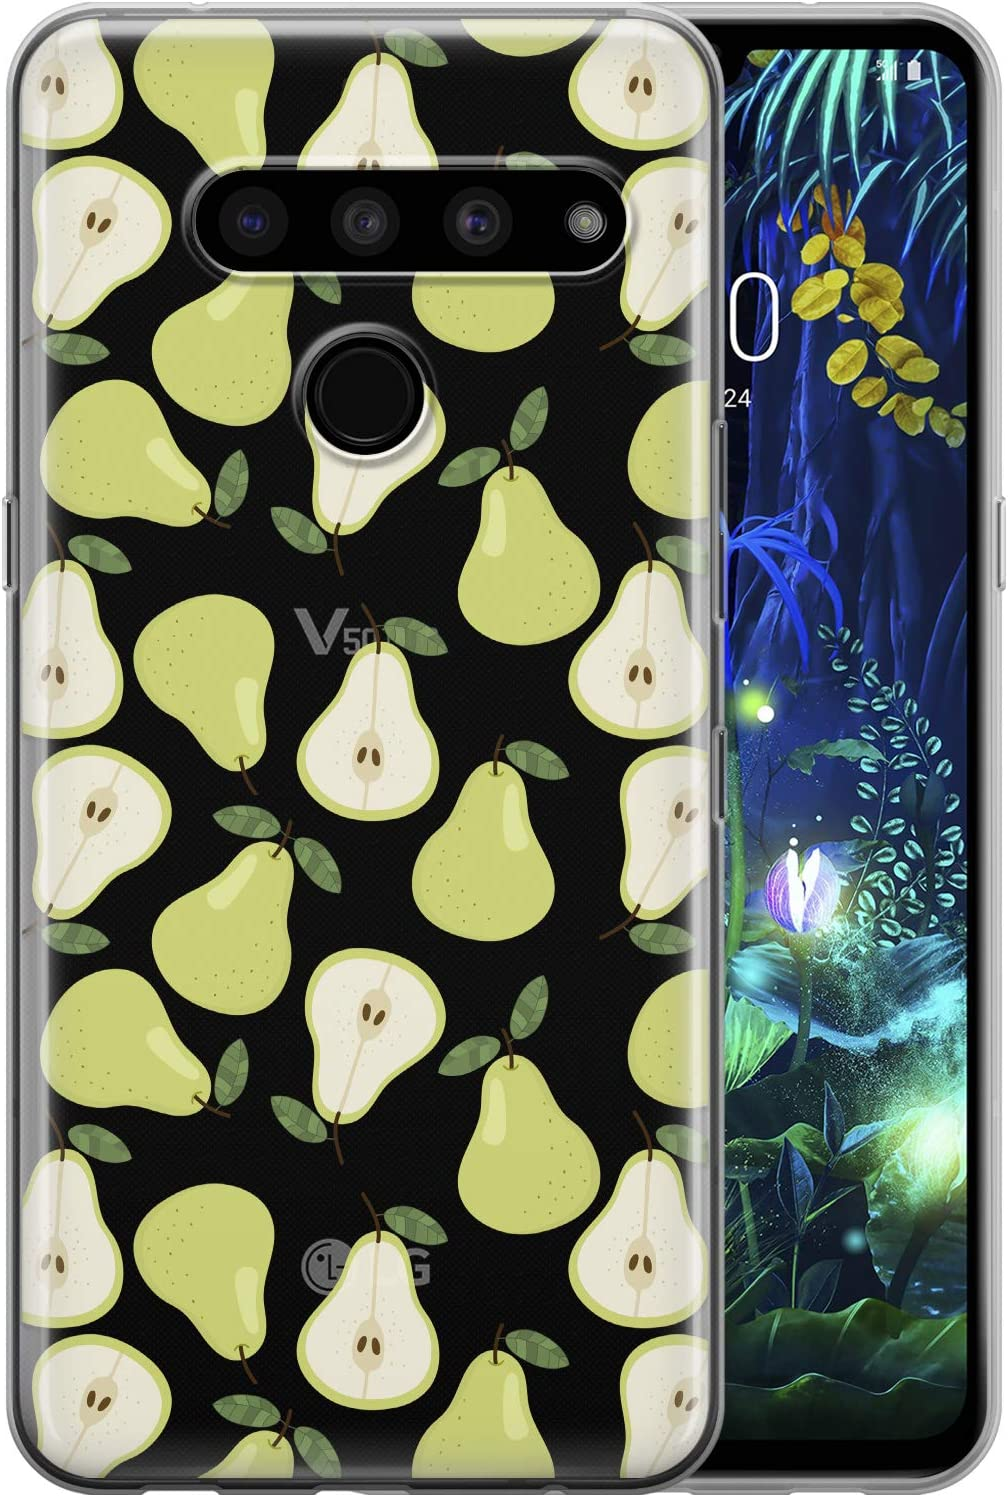 Toik Case Compatible with LG Velvet G8 ThinQ G8S G7 G6 V60 5G V50 V40 V35 V30S Slim Protective TPU Food Silicone Green Pattern Fruits Pear Cute Clear Simple Cover Flexible Lightweight phpat183